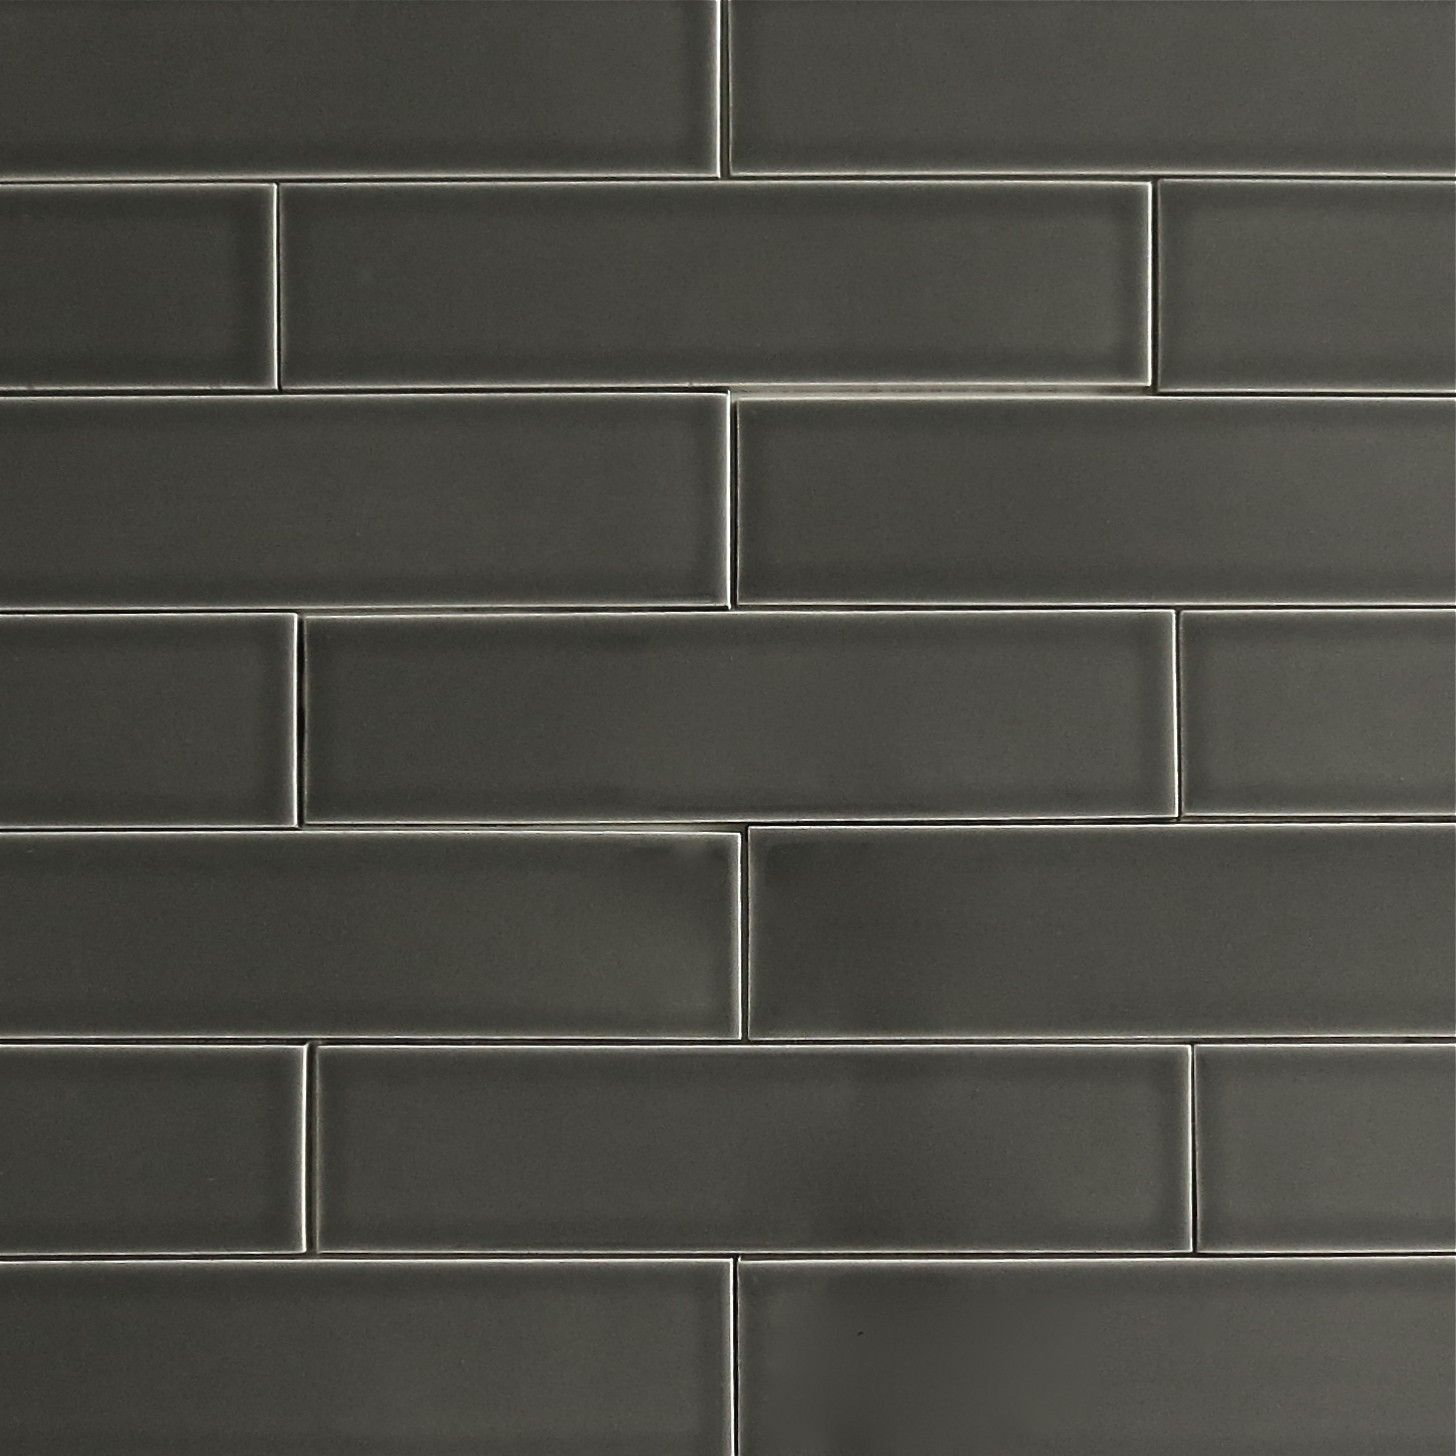 Ceramic Subway Tile In Carbon Grey By Modwalls Clayhaus This Eco Friendly Is Perfect For Any Kitchen Backsplash Fireplace Or Bathroom